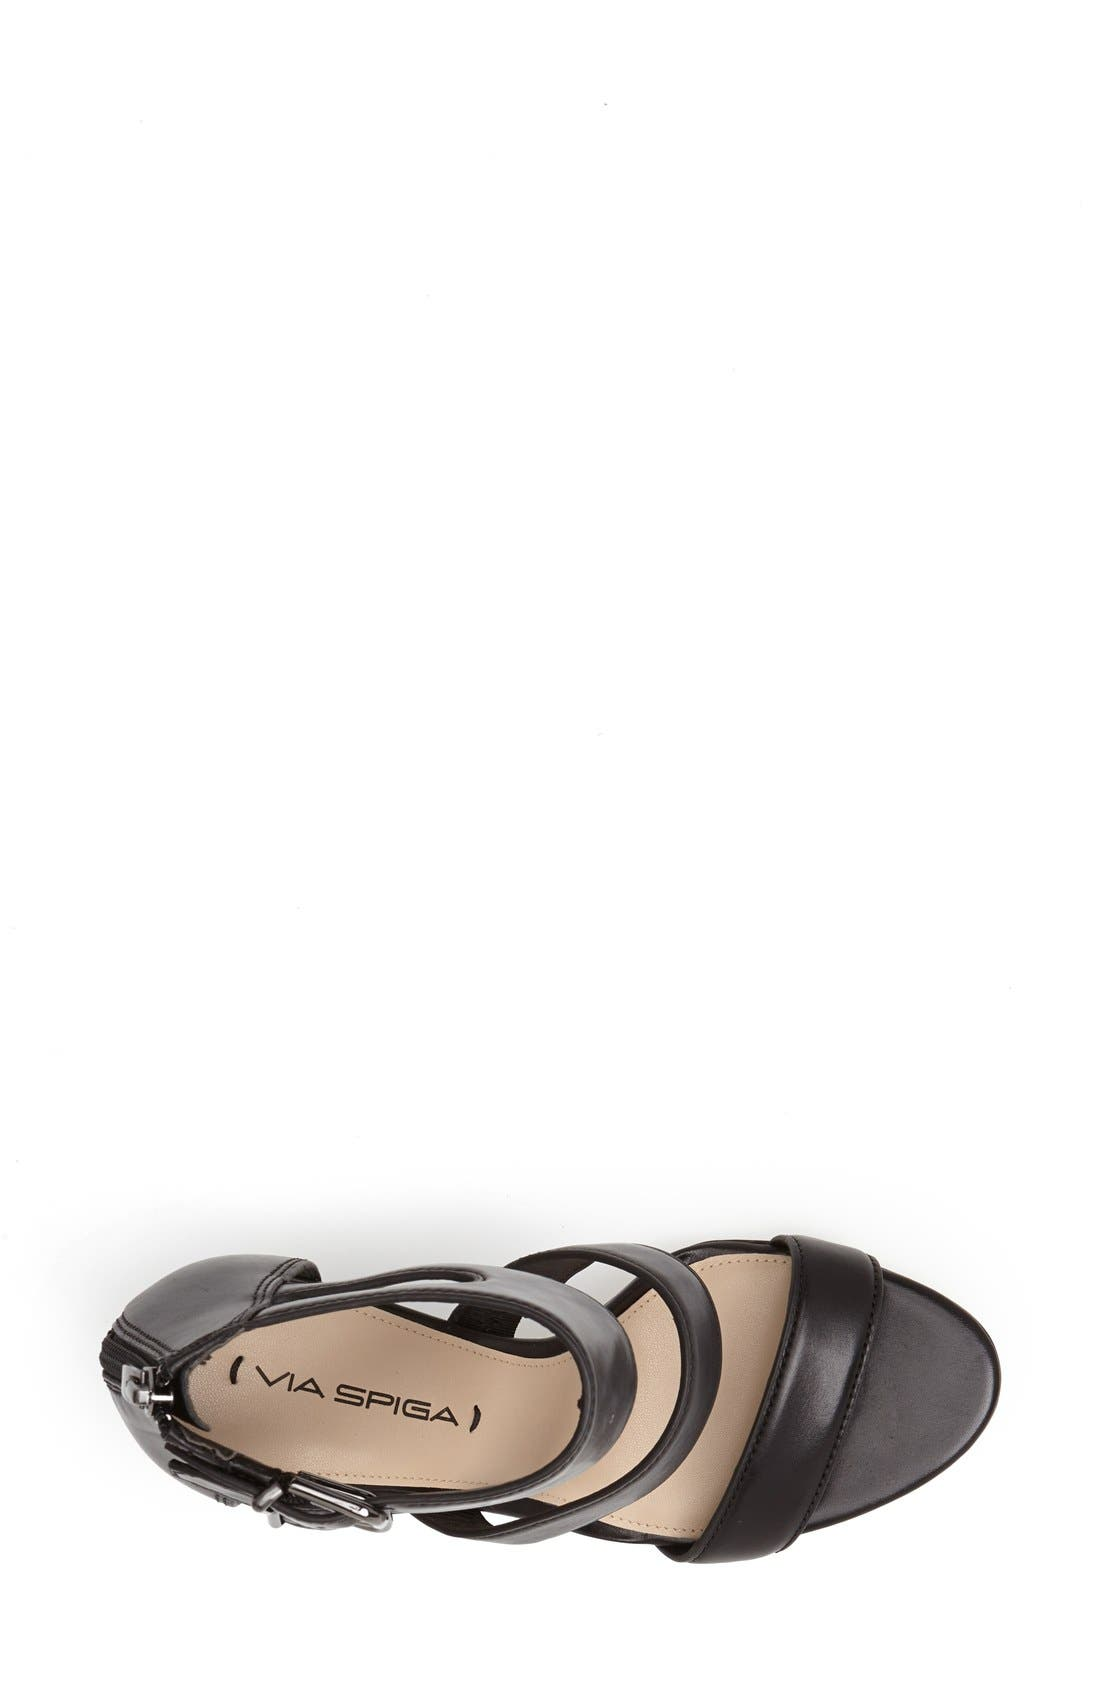 Alternate Image 4  - Via Spiga 'Fernanda' Wedge Leather Sandal (Women)